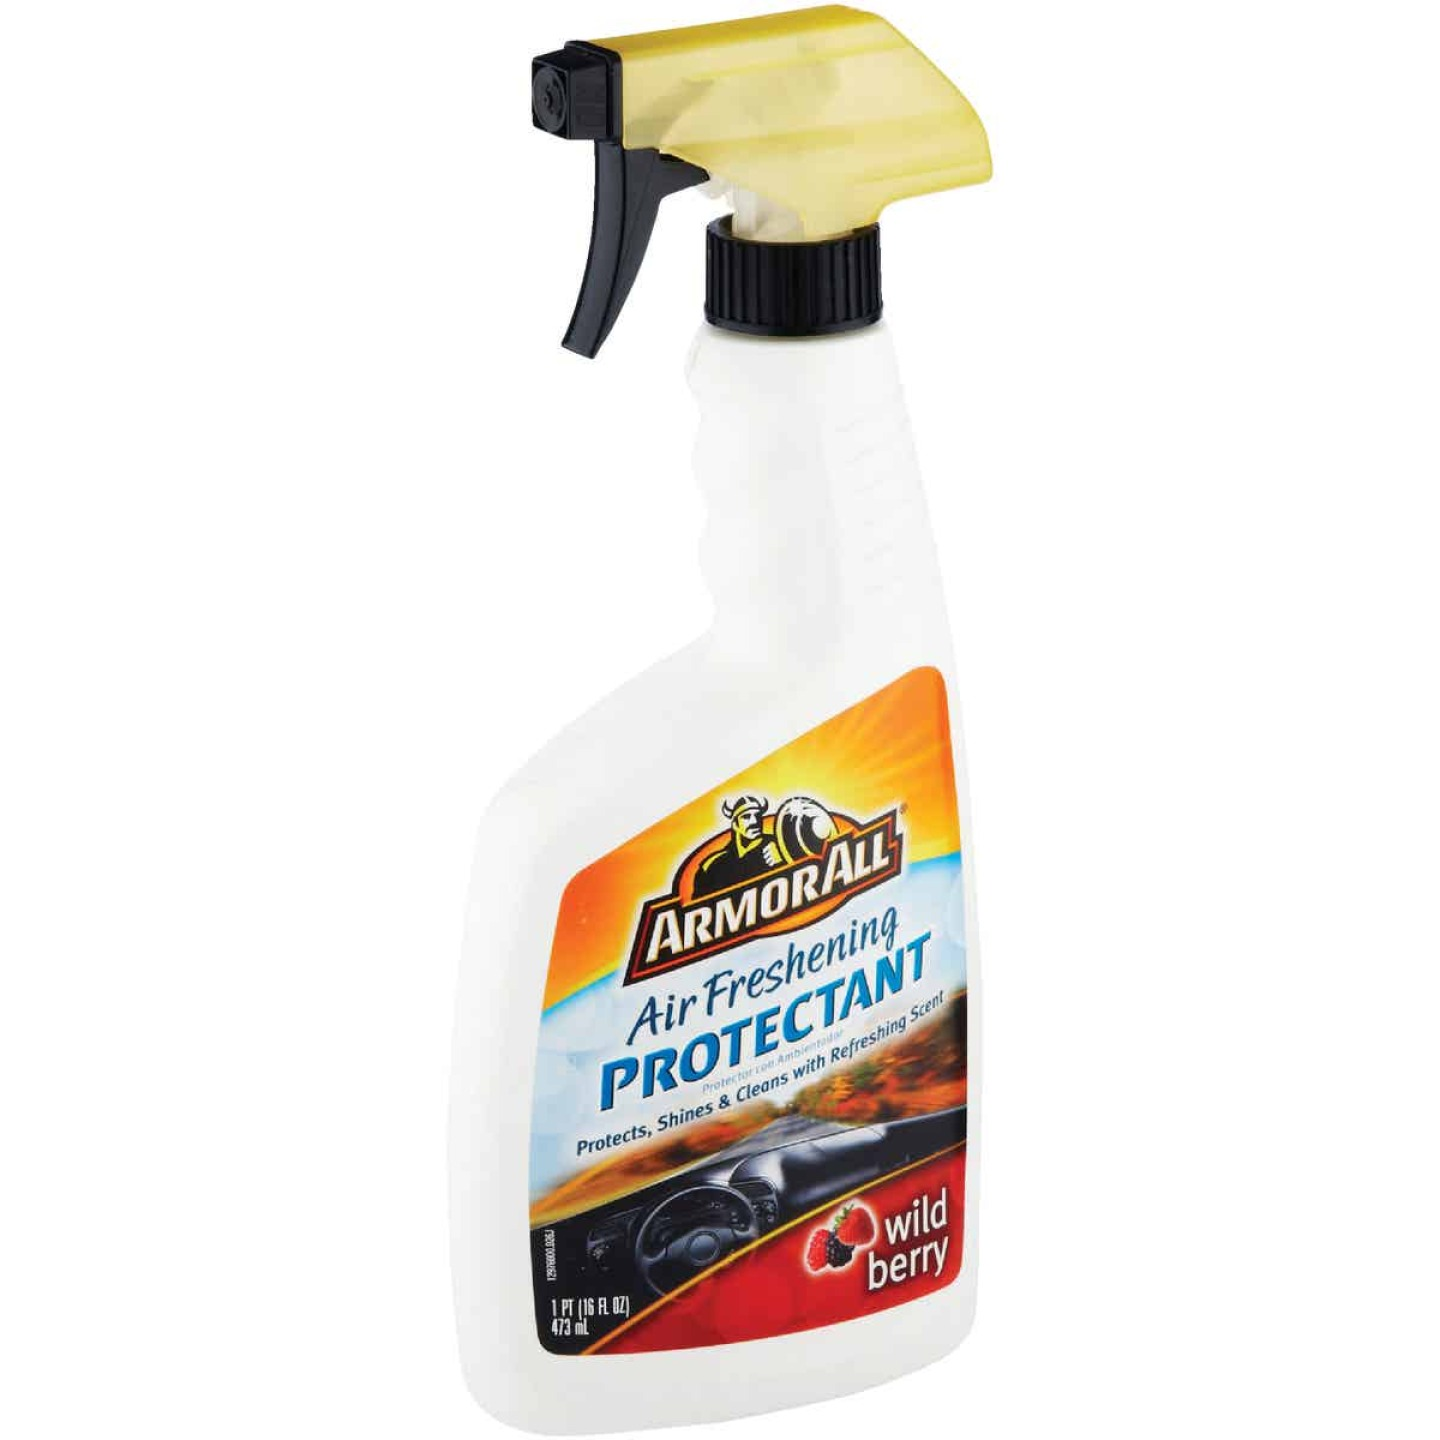 Armor All 16 Oz. Pump Spray Air Freshening Protectant, Wild Berry Scent Image 2